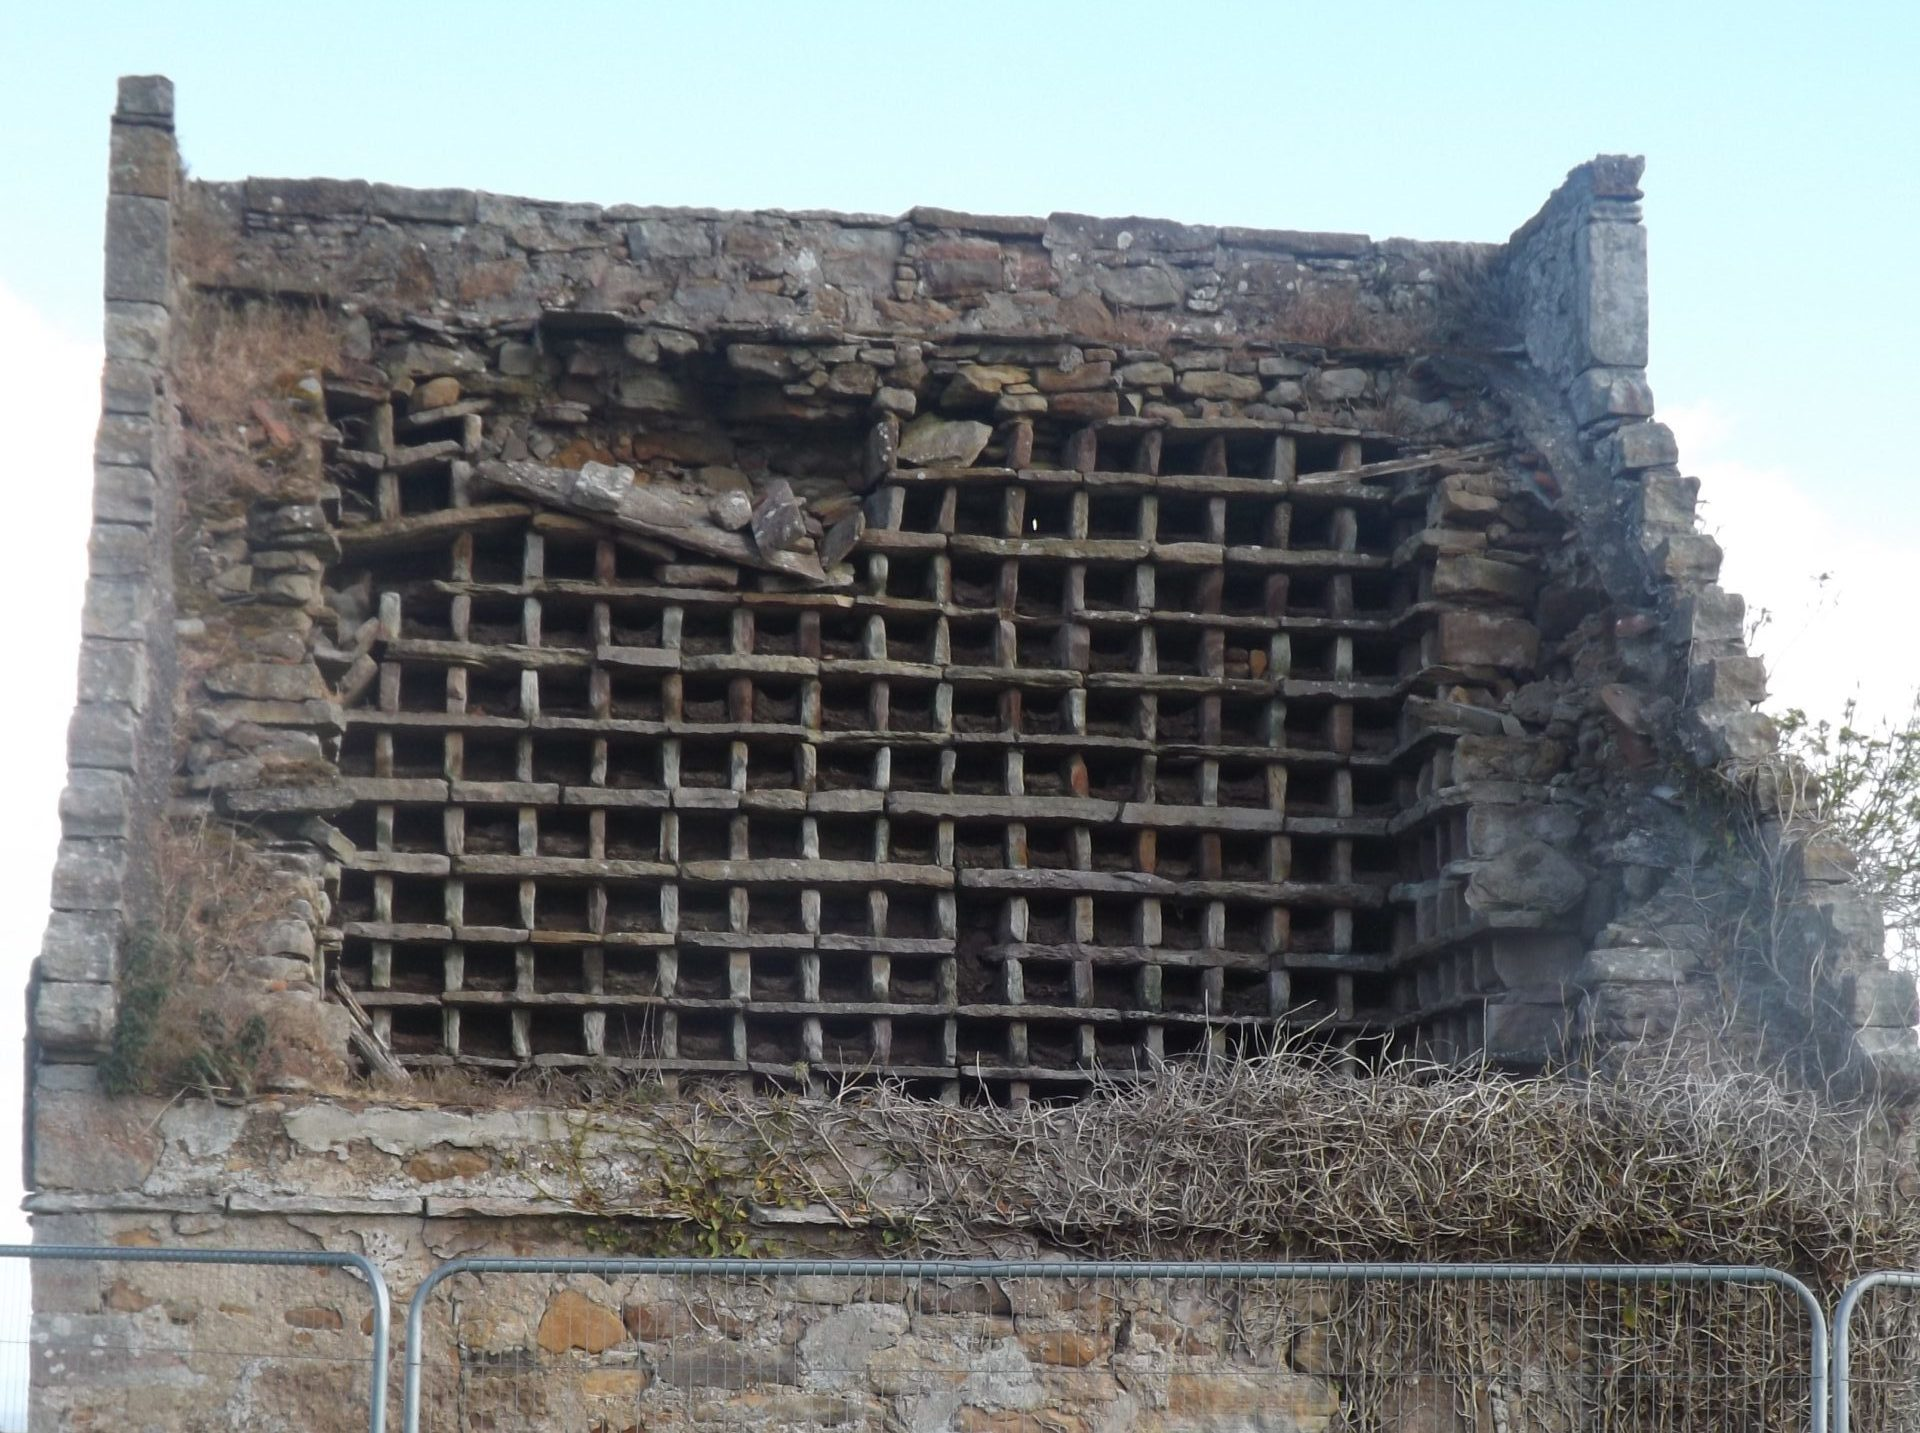 The doocot has seen better days.